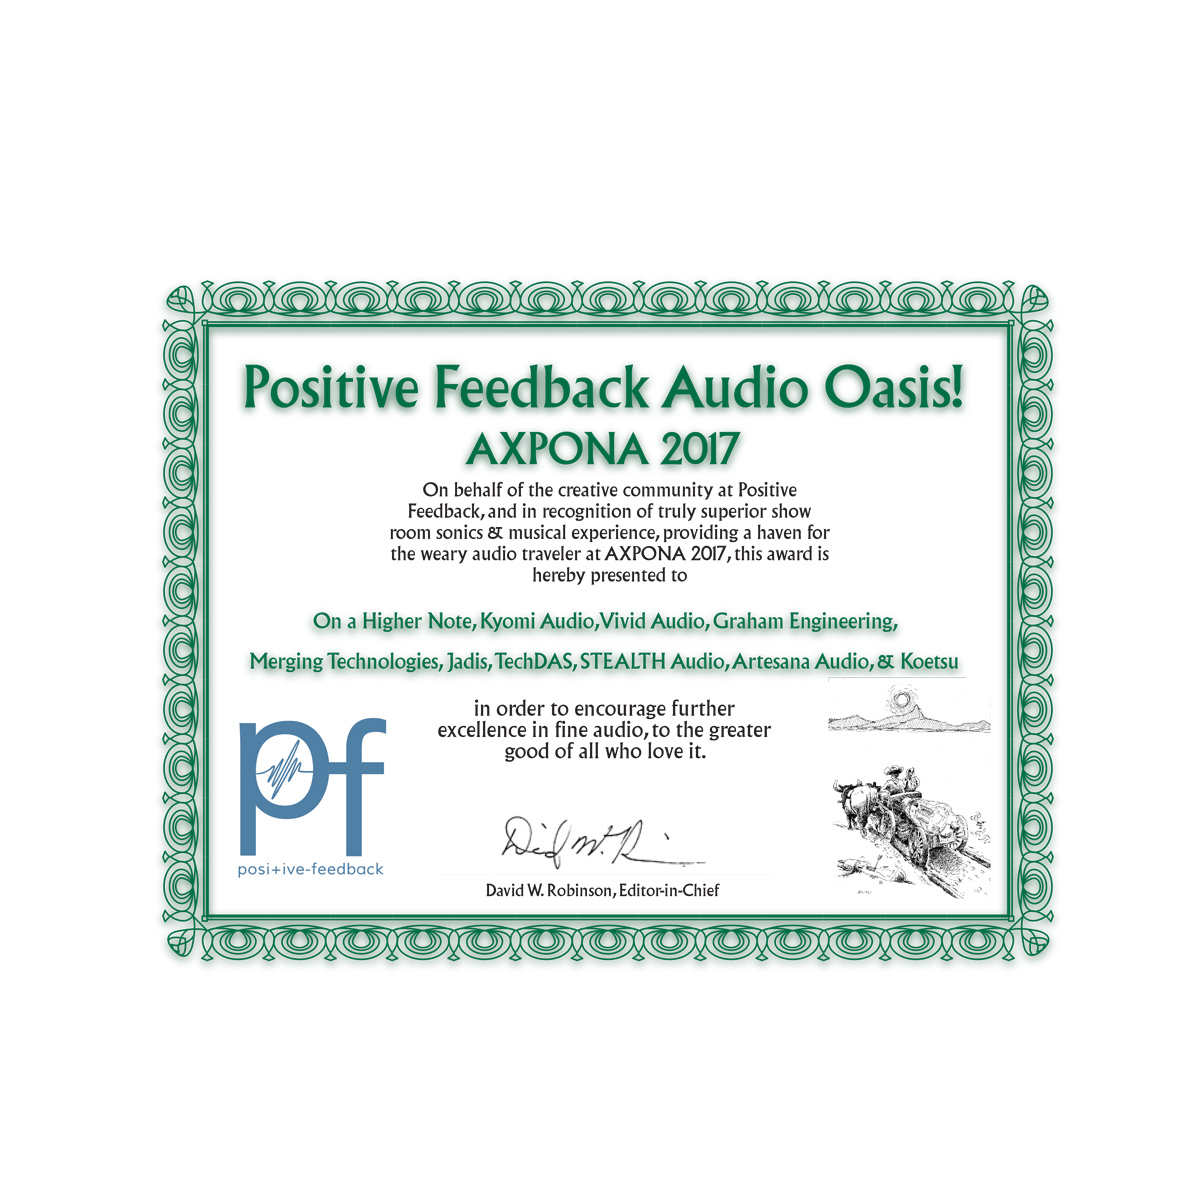 Positive Feedback Audio Oasis - Axpona 2017